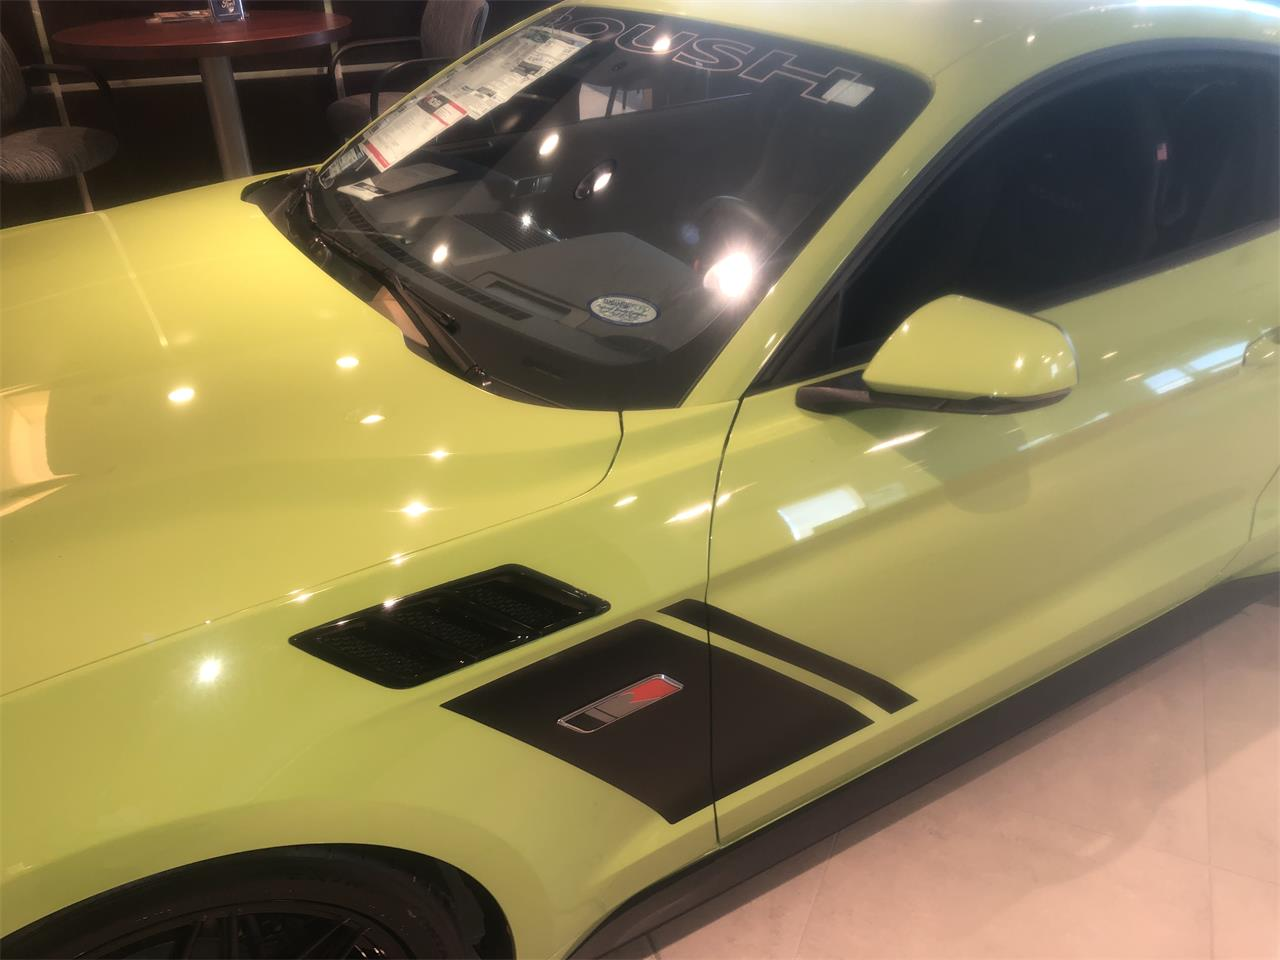 2020 Ford Mustang (Roush) (CC-1416542) for sale in Naples, Florida